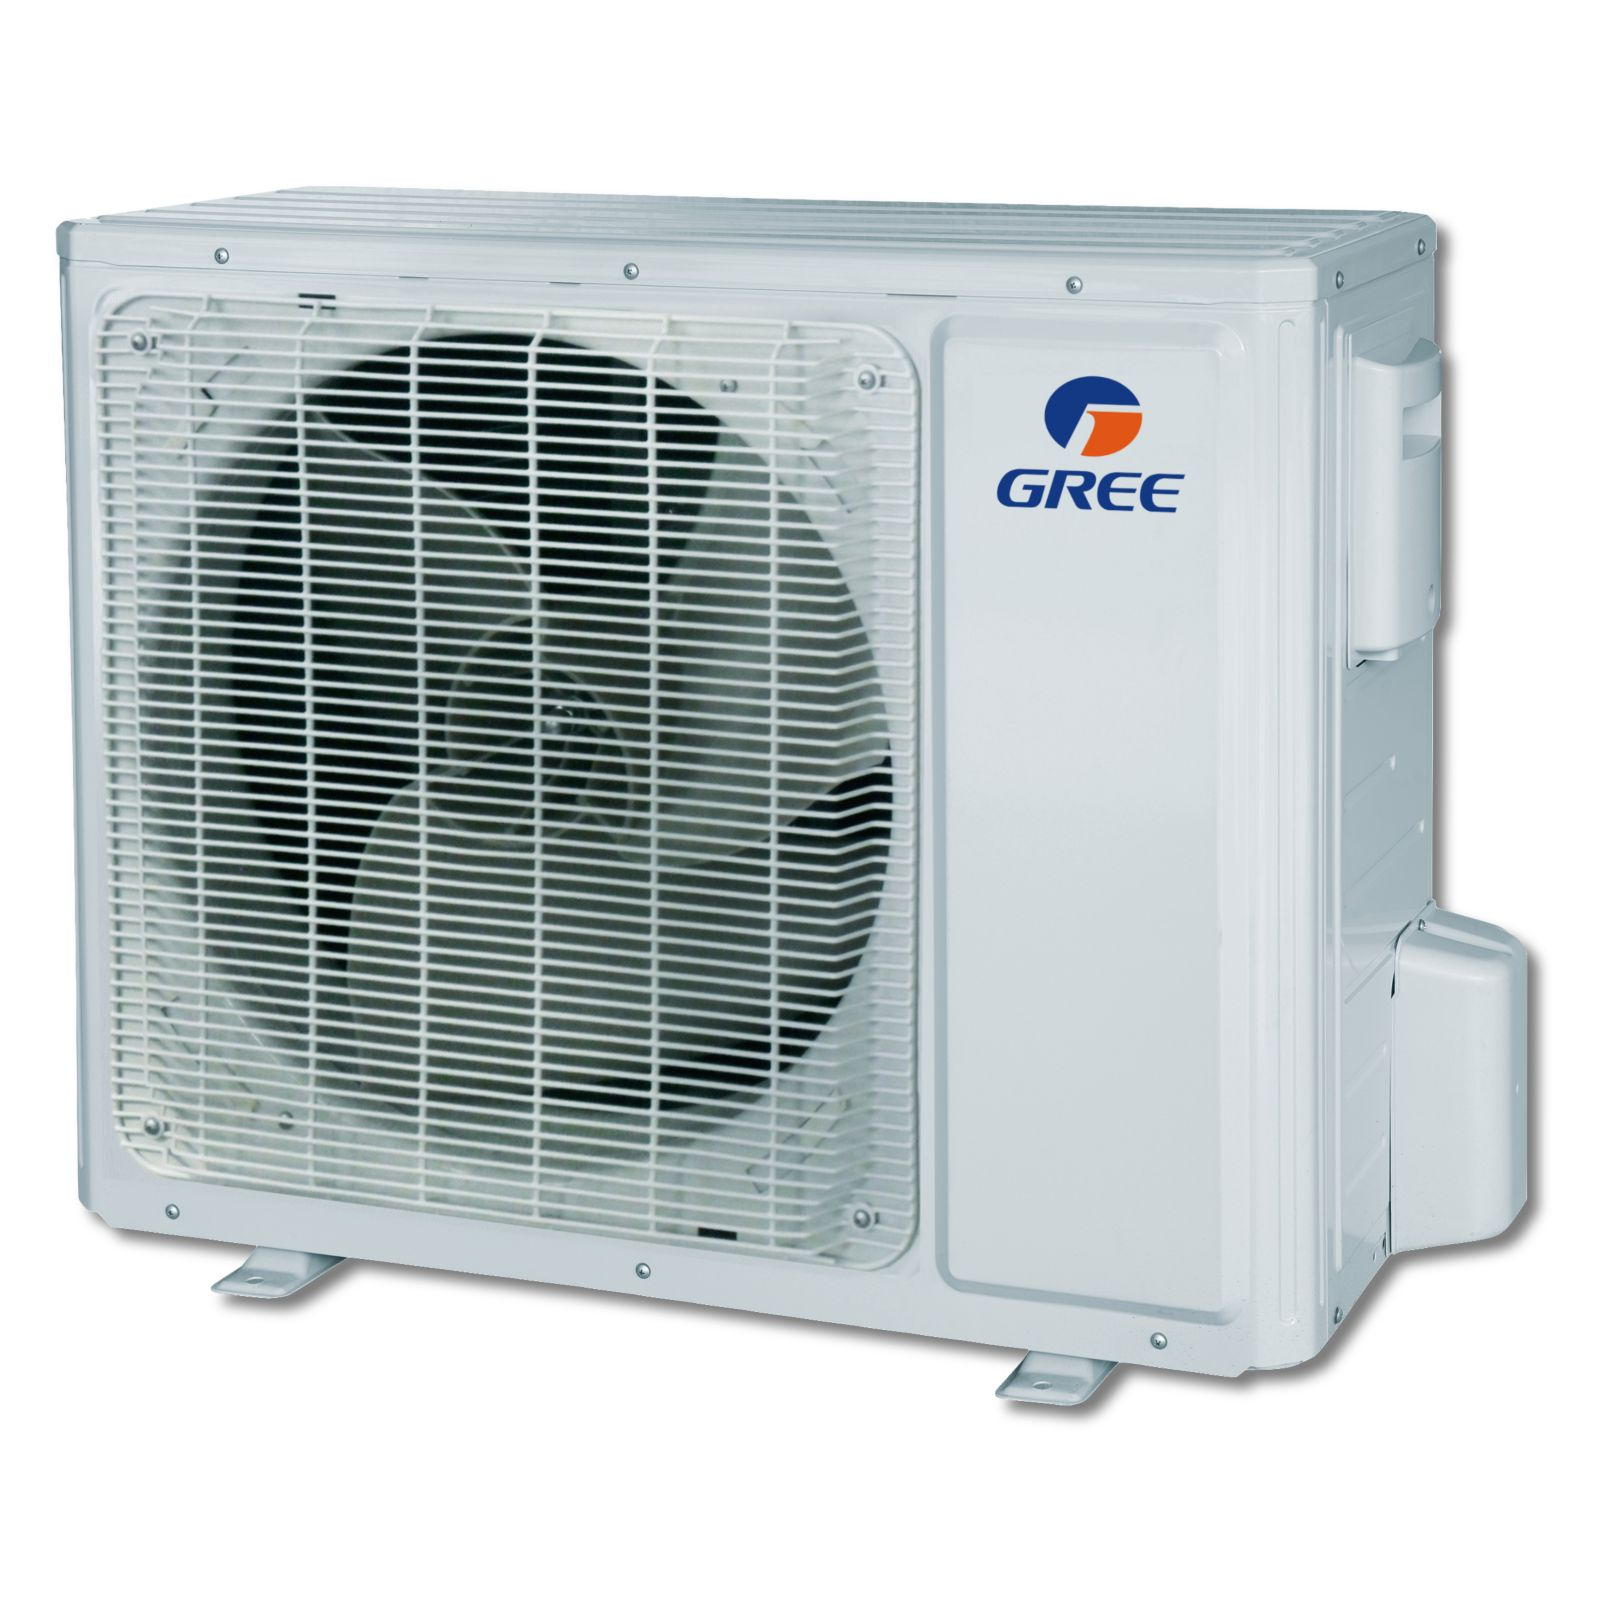 GREE UMAT18HP230V1AO - U-Match 18,000 BTU/h, 16 SEER  Inverter Heat Pump Condensing Unit, 208-230 Volt, 60 Hz